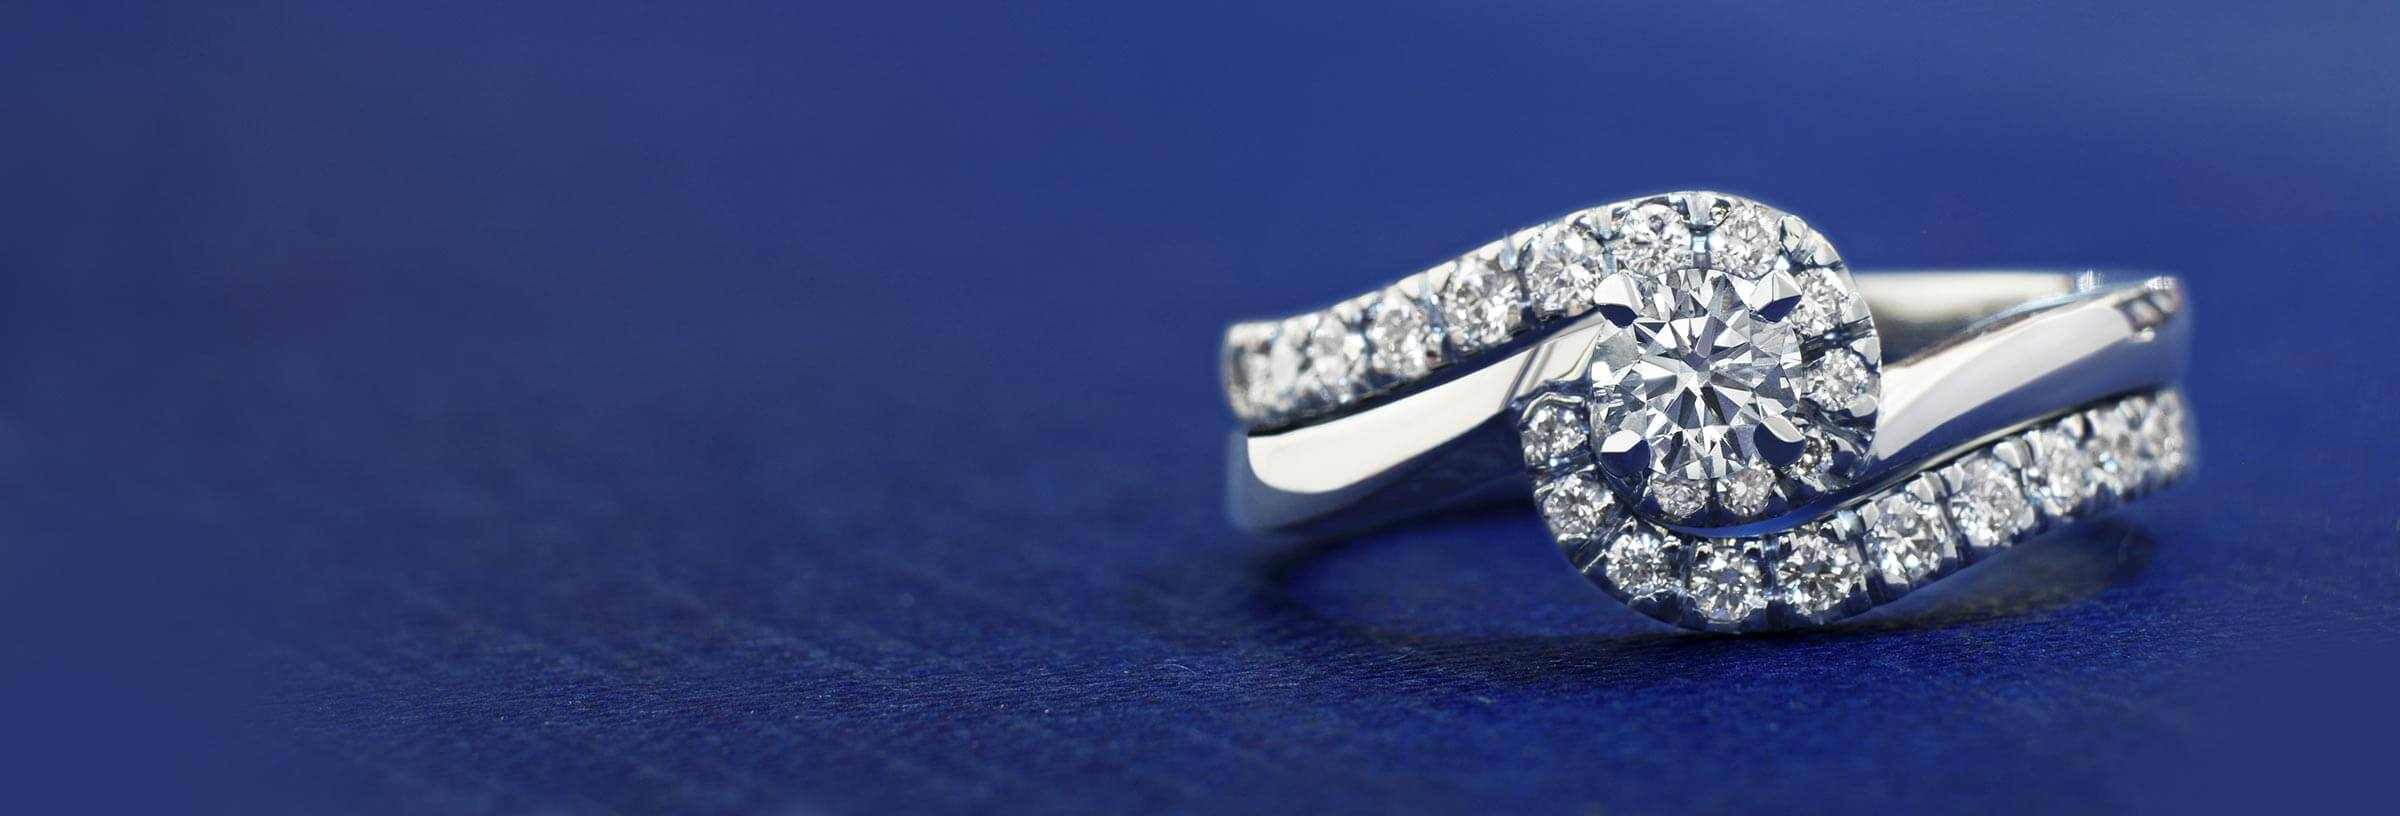 engagement and wedding ring sets - Engagement And Wedding Ring Sets